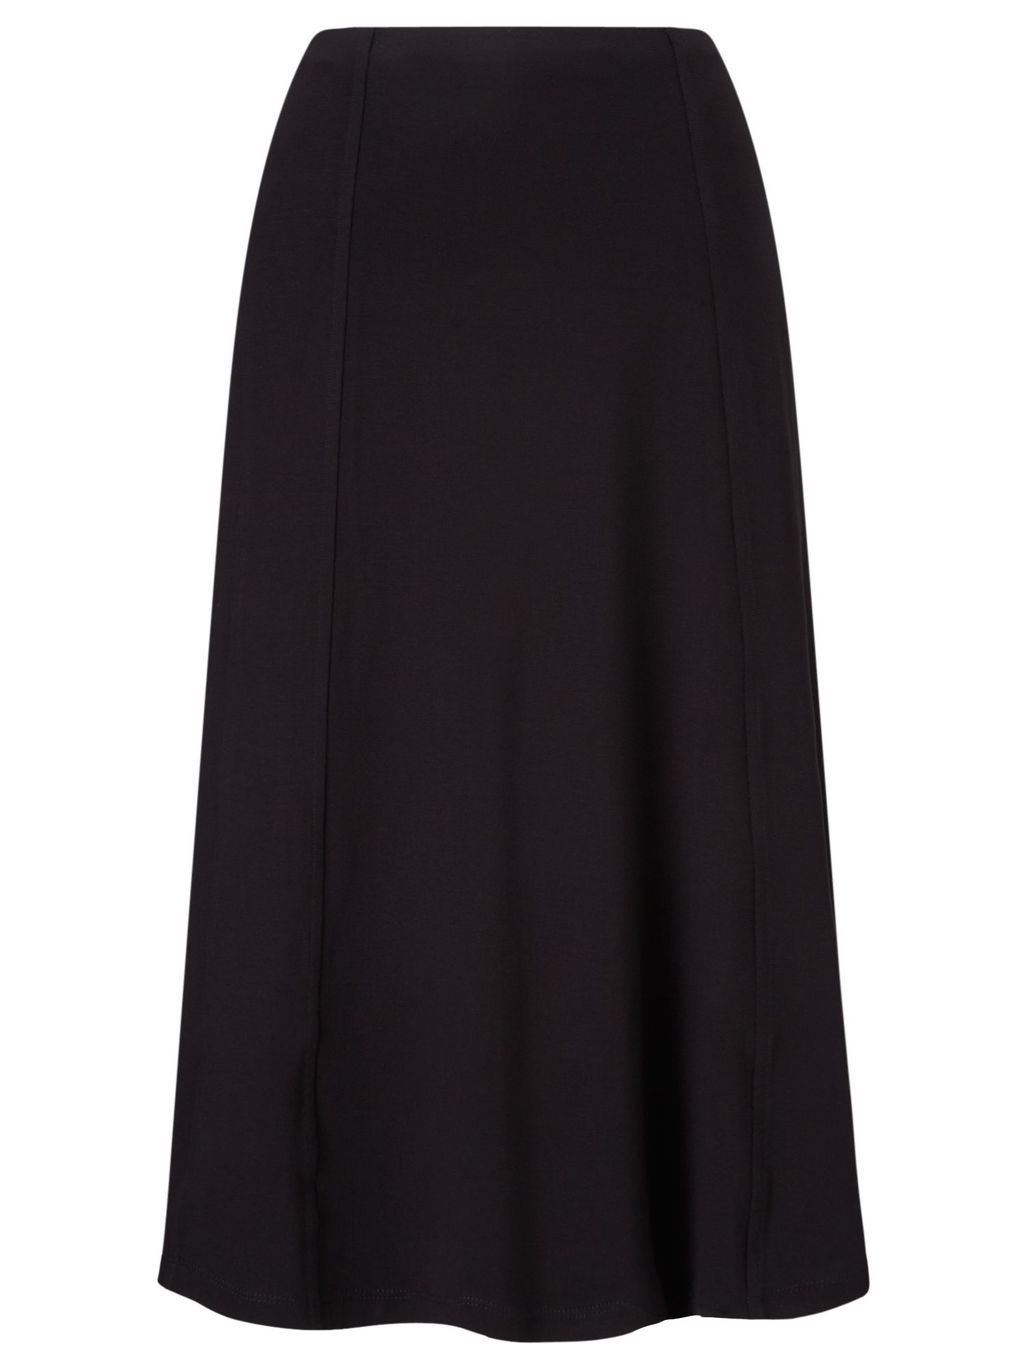 Panel Detail Jersey Skirt, Black - length: below the knee; pattern: plain; fit: loose/voluminous; waist: high rise; predominant colour: black; occasions: work; style: a-line; fibres: polyester/polyamide - stretch; hip detail: subtle/flattering hip detail; pattern type: fabric; texture group: jersey - stretchy/drapey; season: s/s 2016; wardrobe: basic